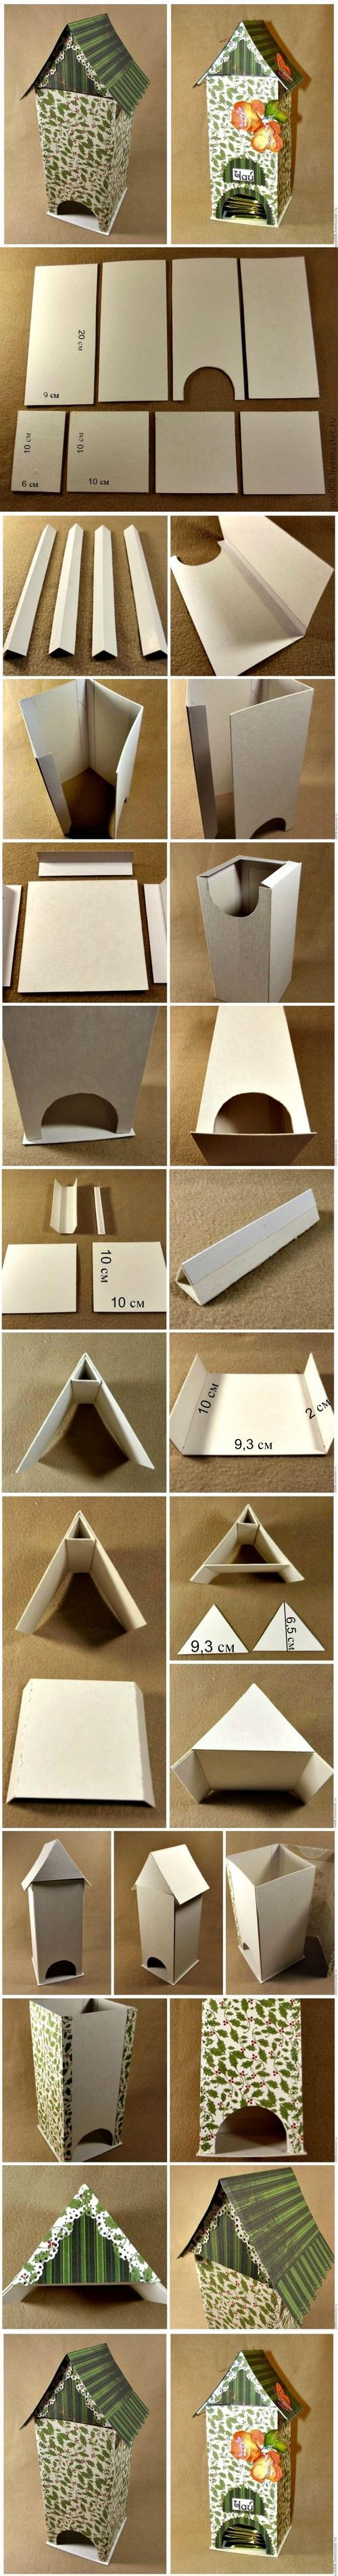 DIY Cardboard Tea Bag Dispenser DIY Projects / UsefulDIY.com